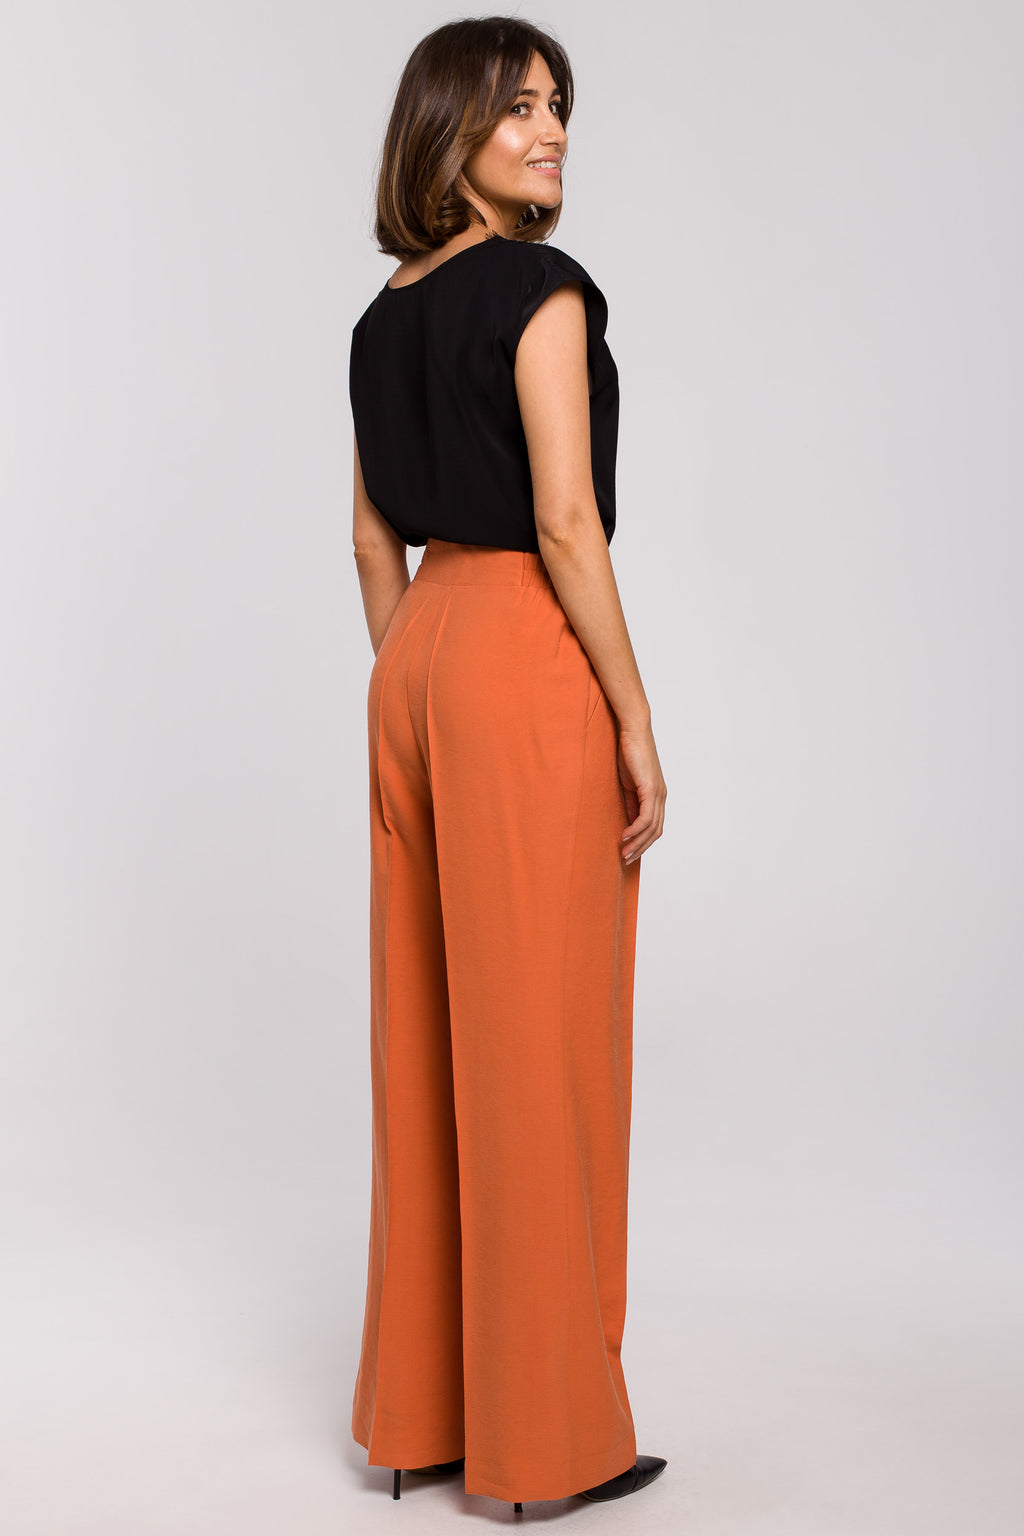 Orange Palazzo Trousers With Elastic Waist - So Chic Boutique